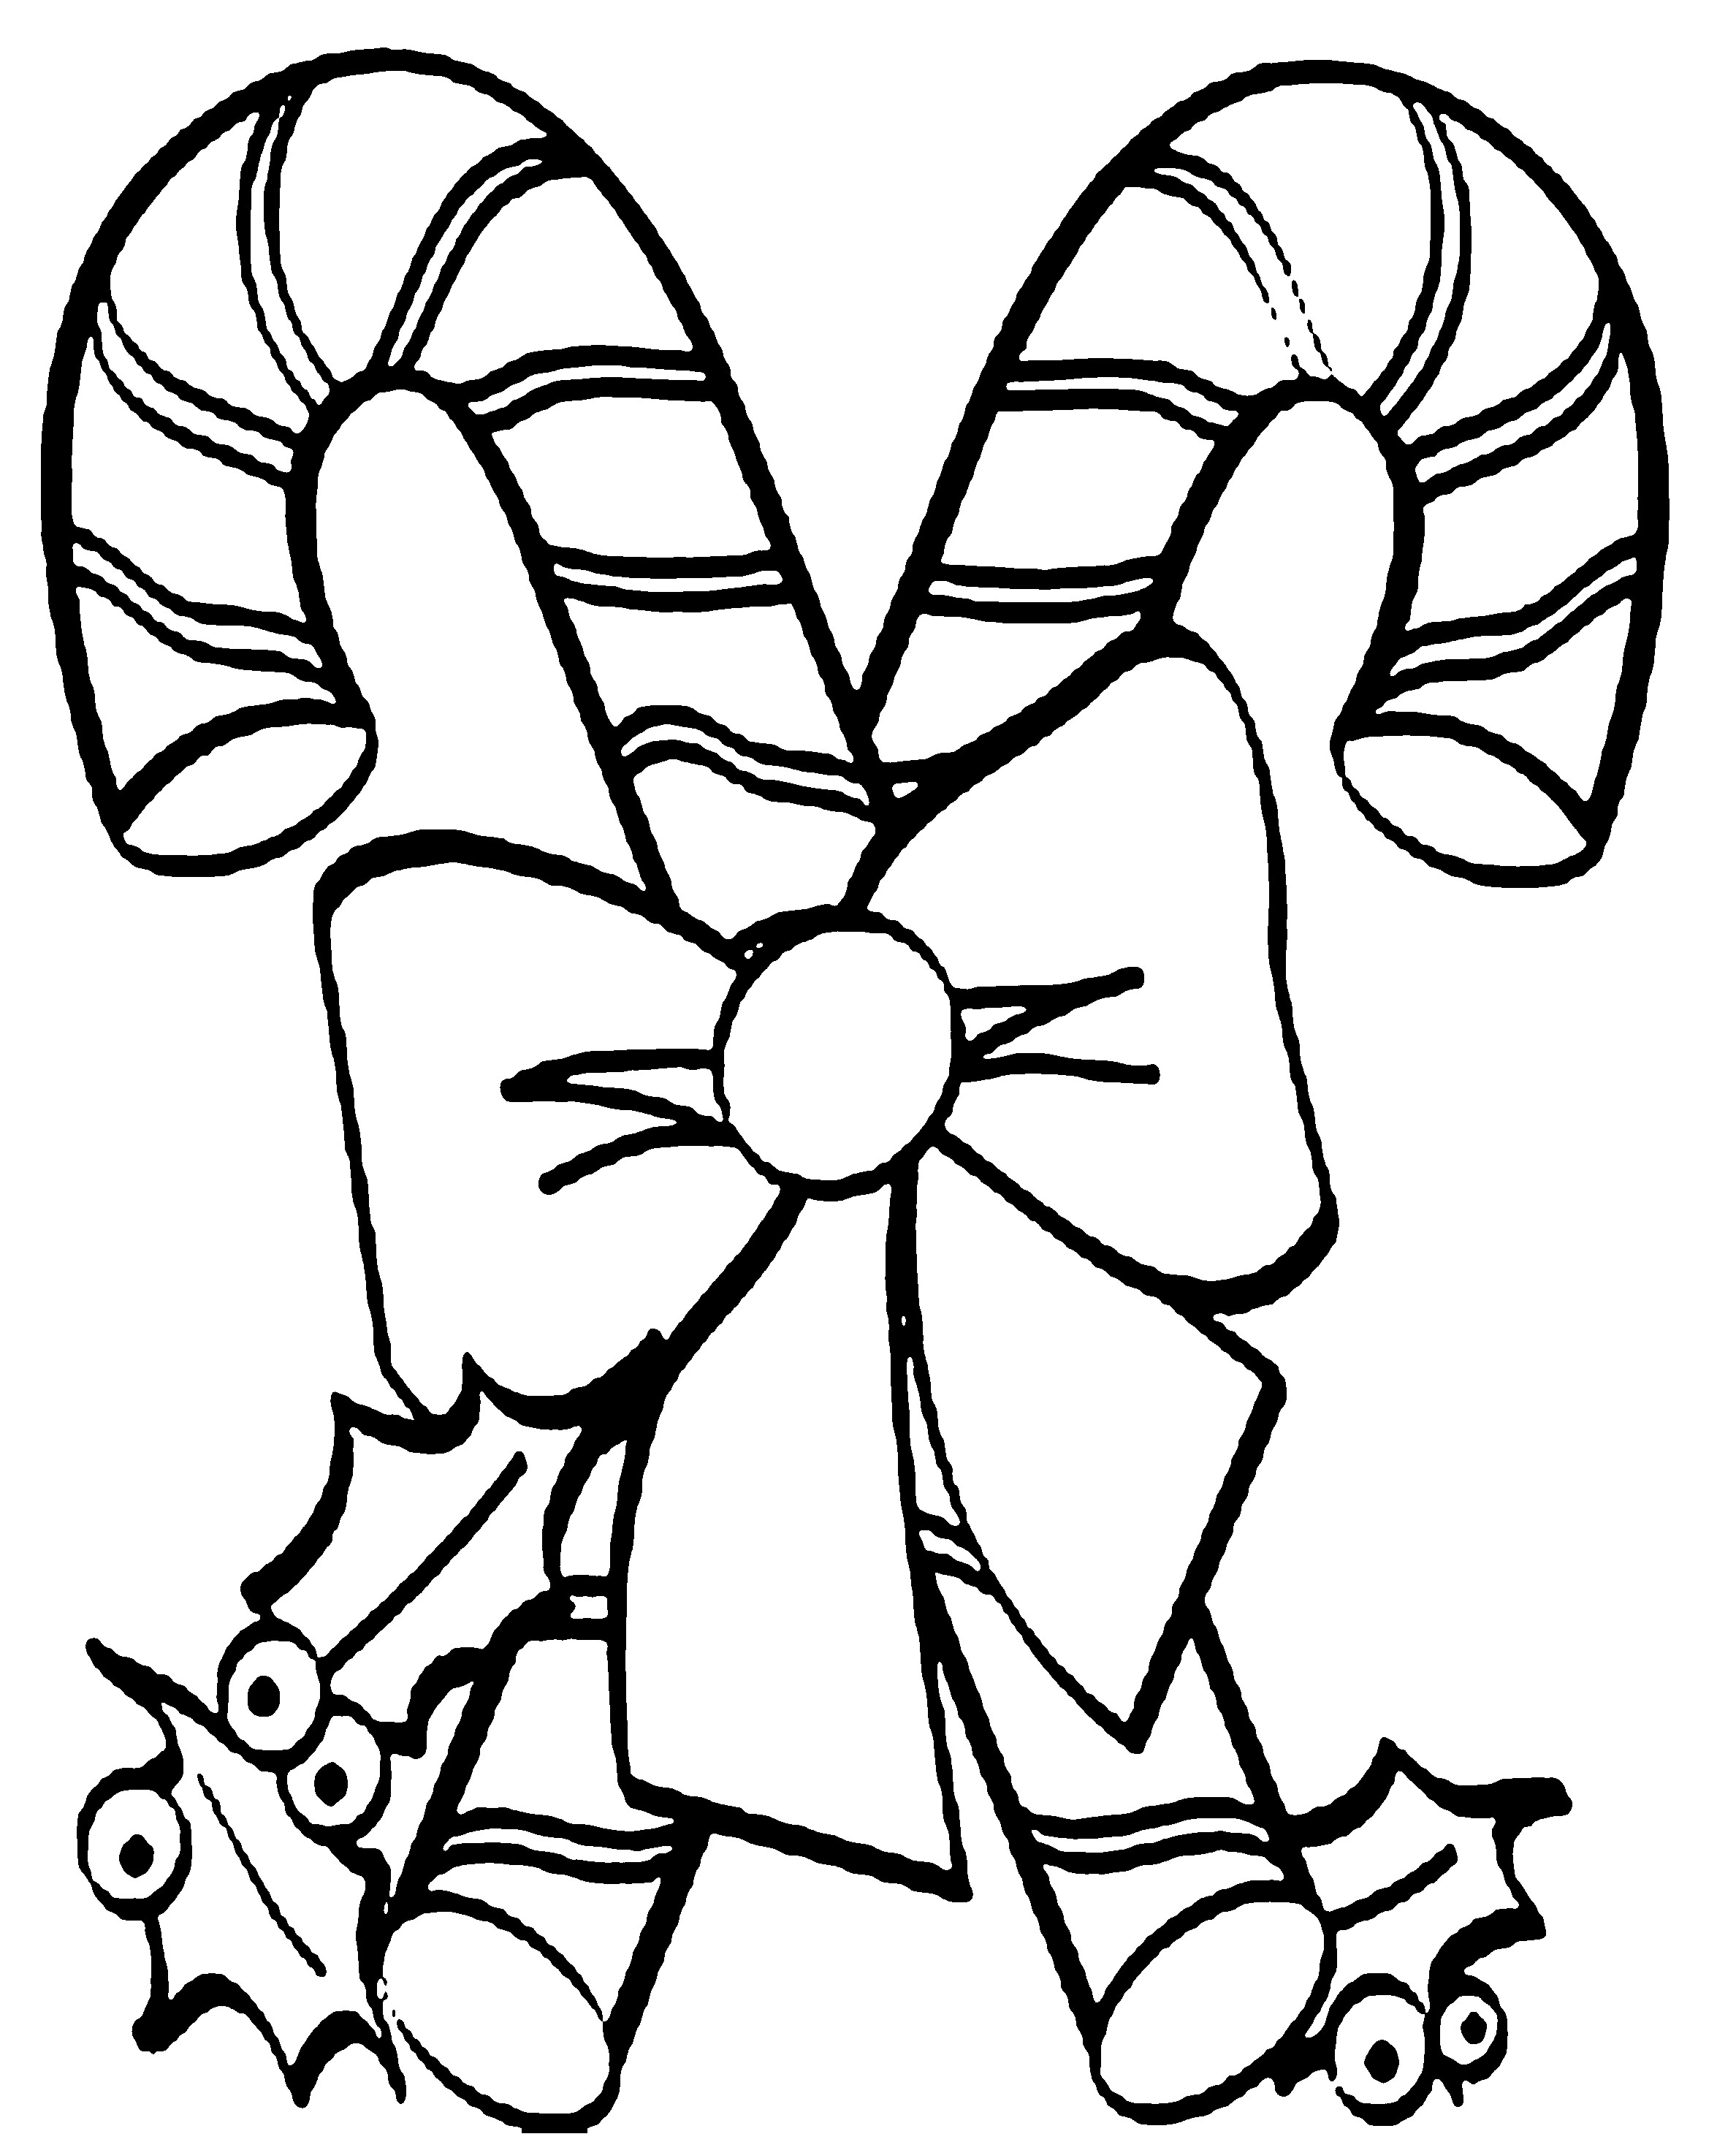 2376x2931 Candy Cane Coloring Page New Candy Cane Coloring Pages